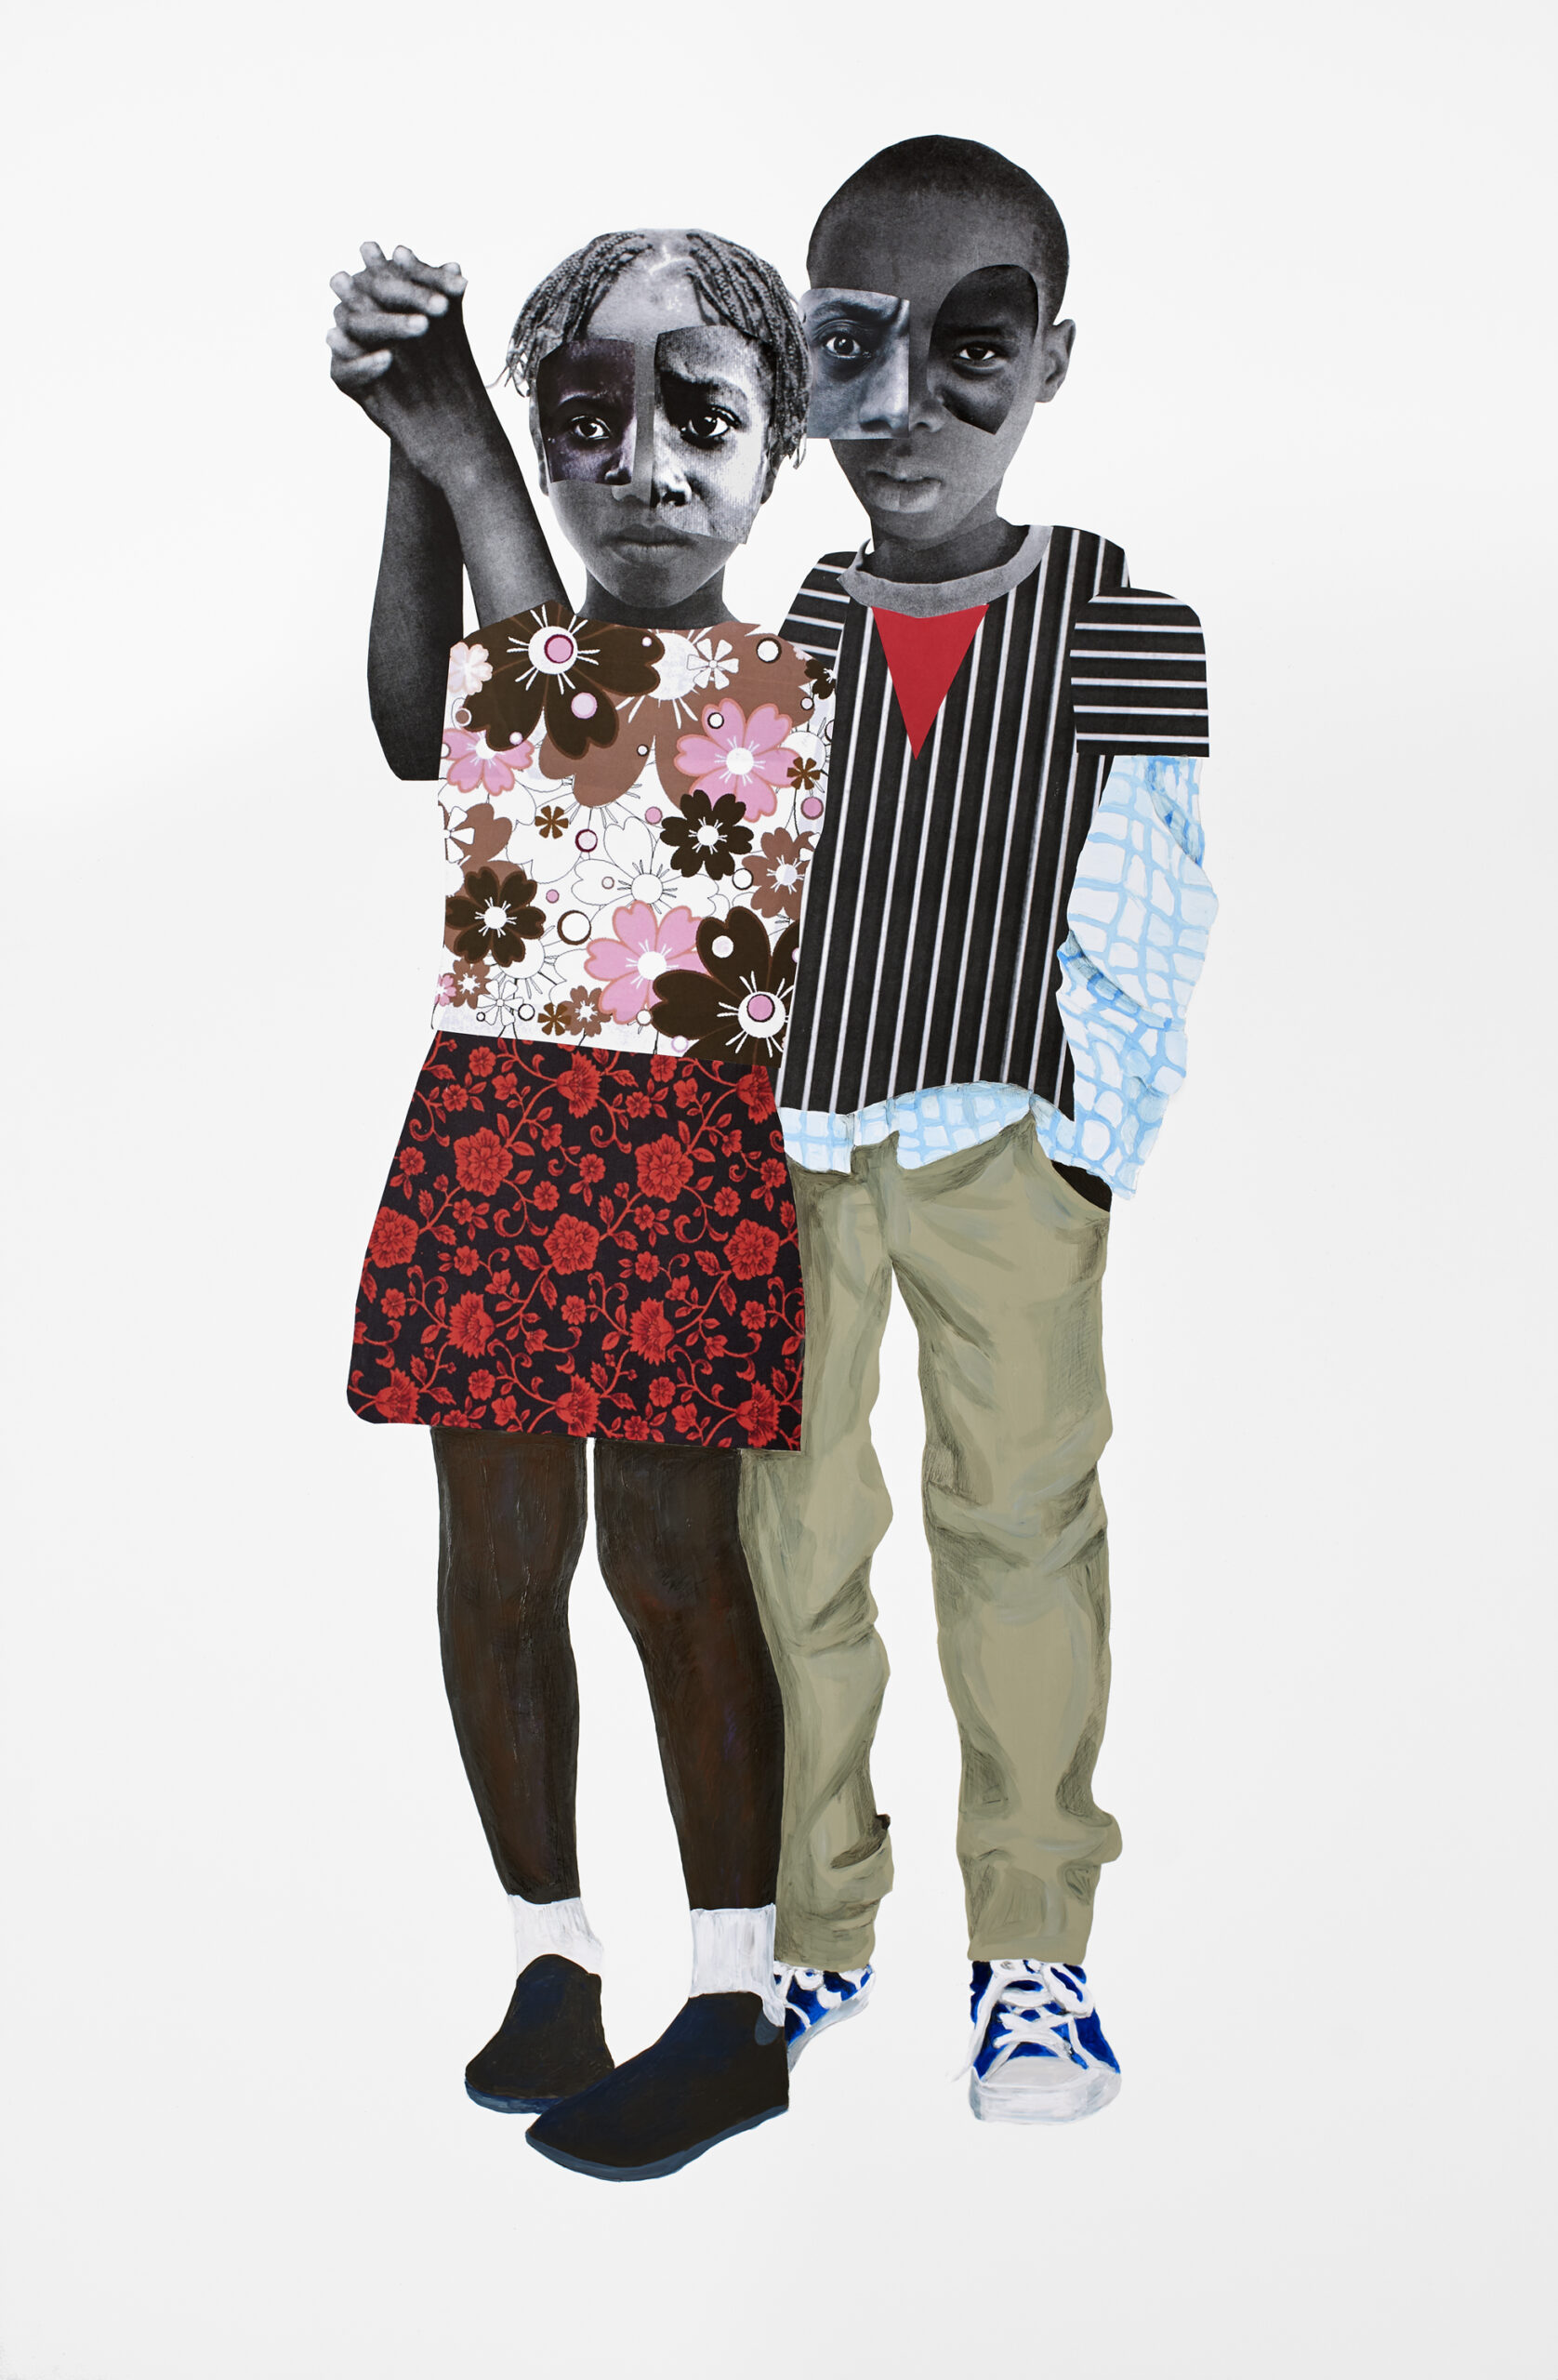 Our destinies are bound 2018, 58 x 38 inches, Mixed media collage on panel Private Collection Copyright Deborah Roberts. Courtesy of the artist, Susanne Vielmetter Los Angeles Projects, CA